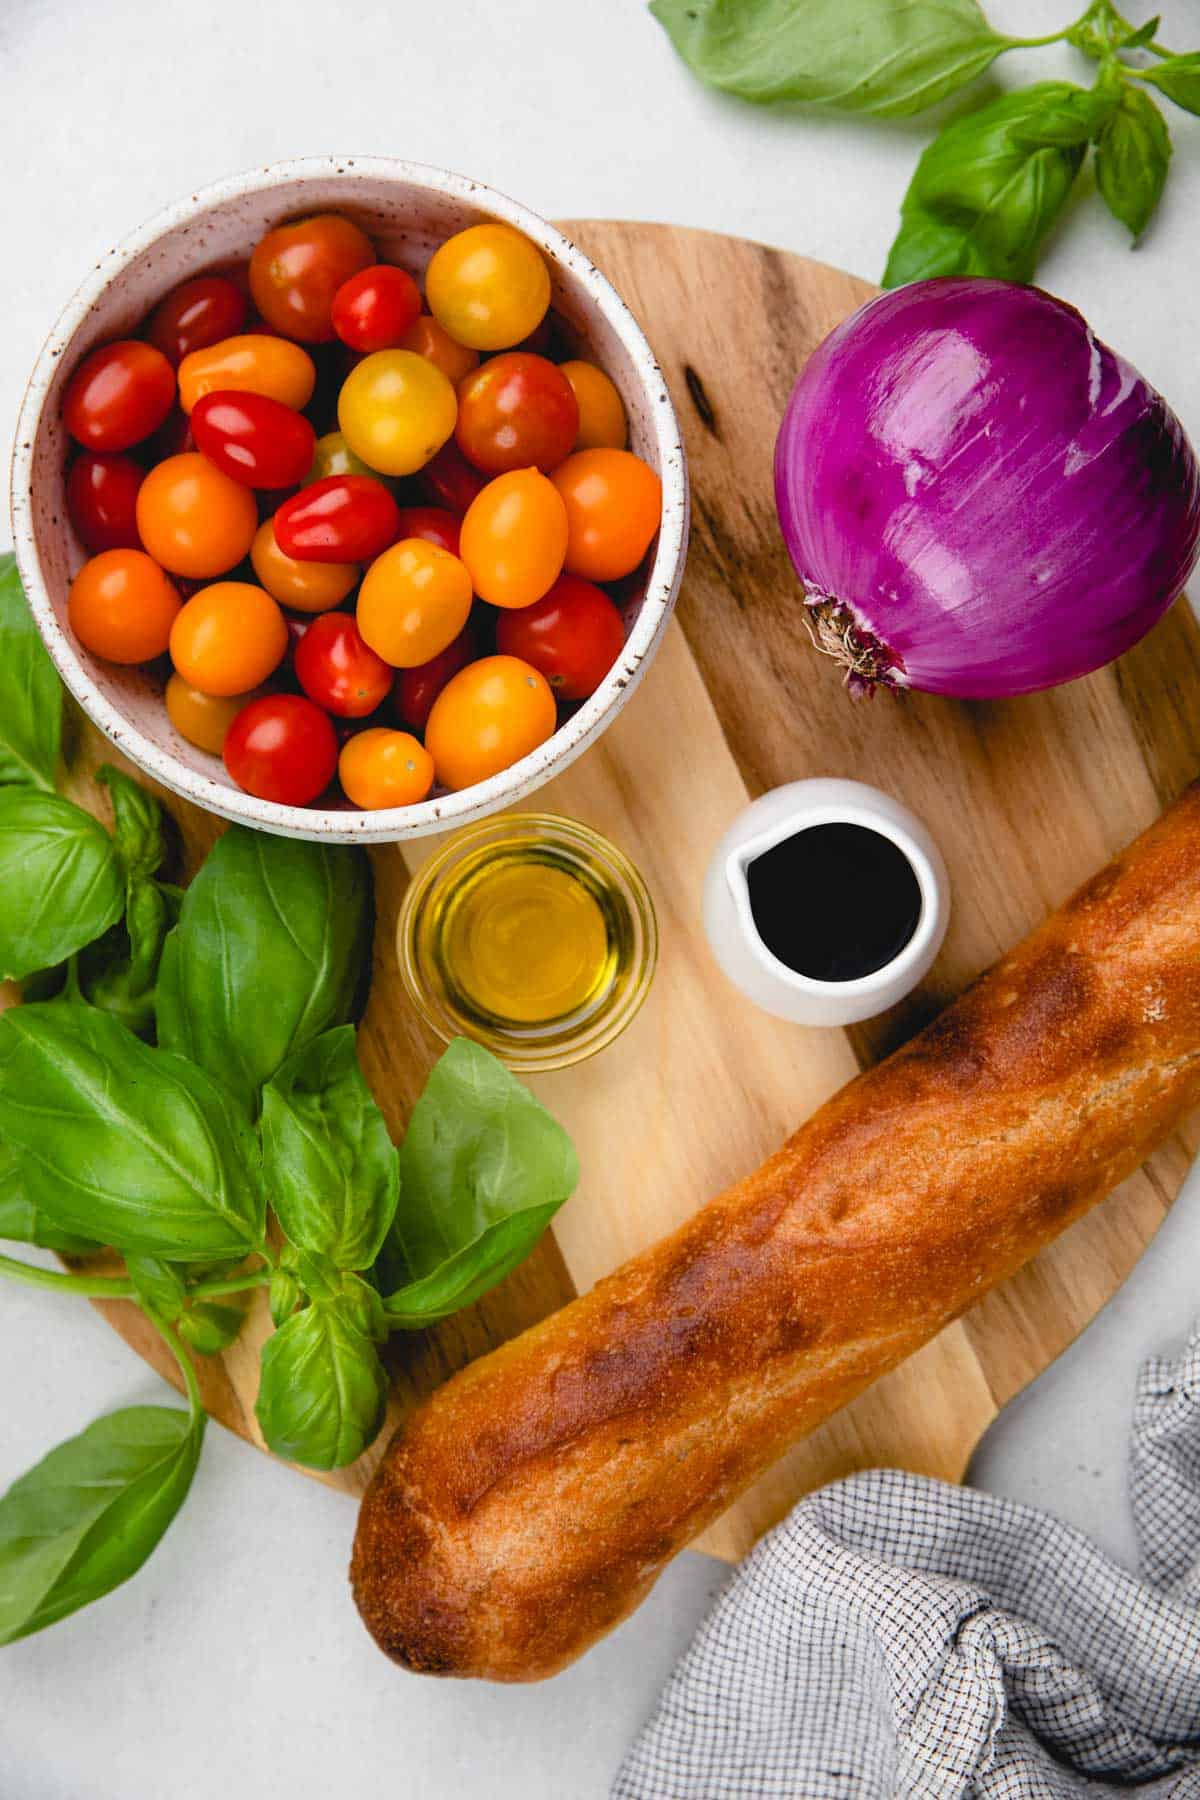 Ingredients for bruschetta (cherry tomatoes, red onion, basil, baguette, olive oil, balsamic glaze.